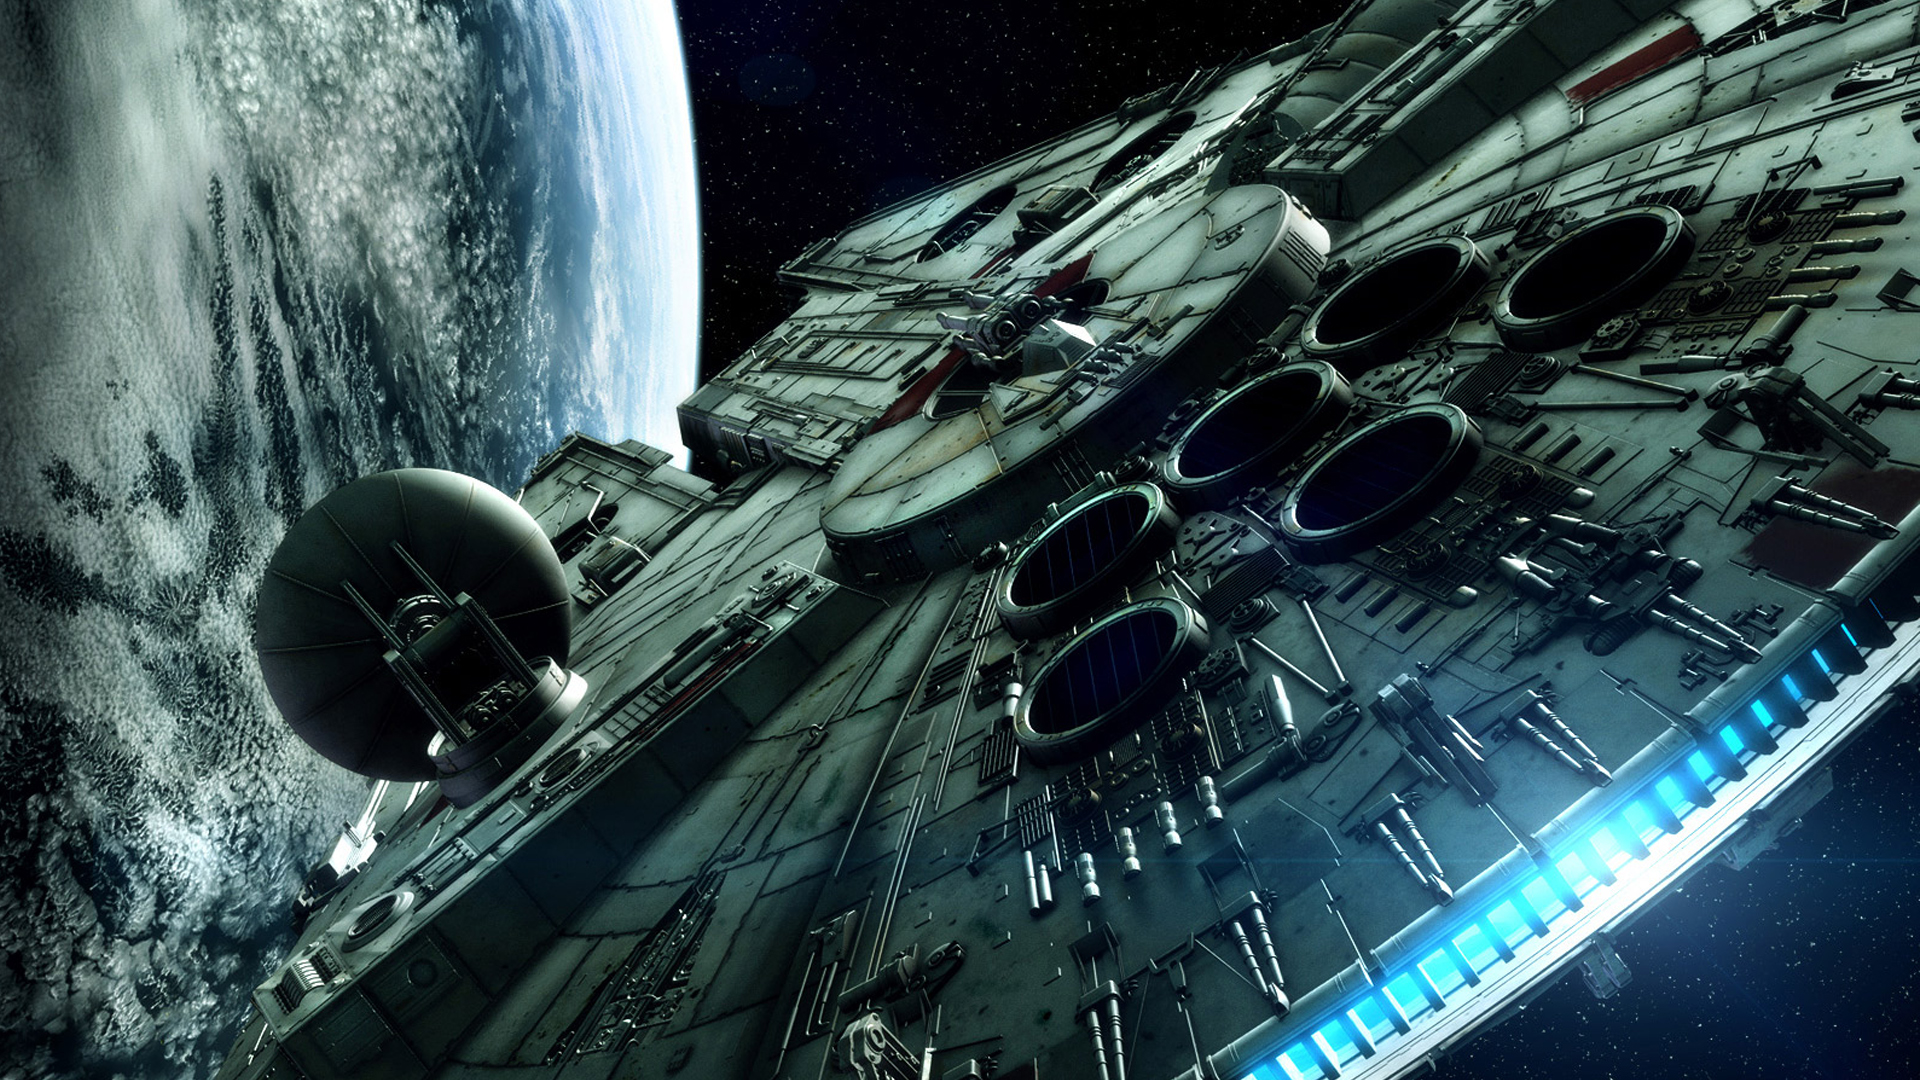 Star Wars Desktop Wallpapers Star Wars Images 1920x1080